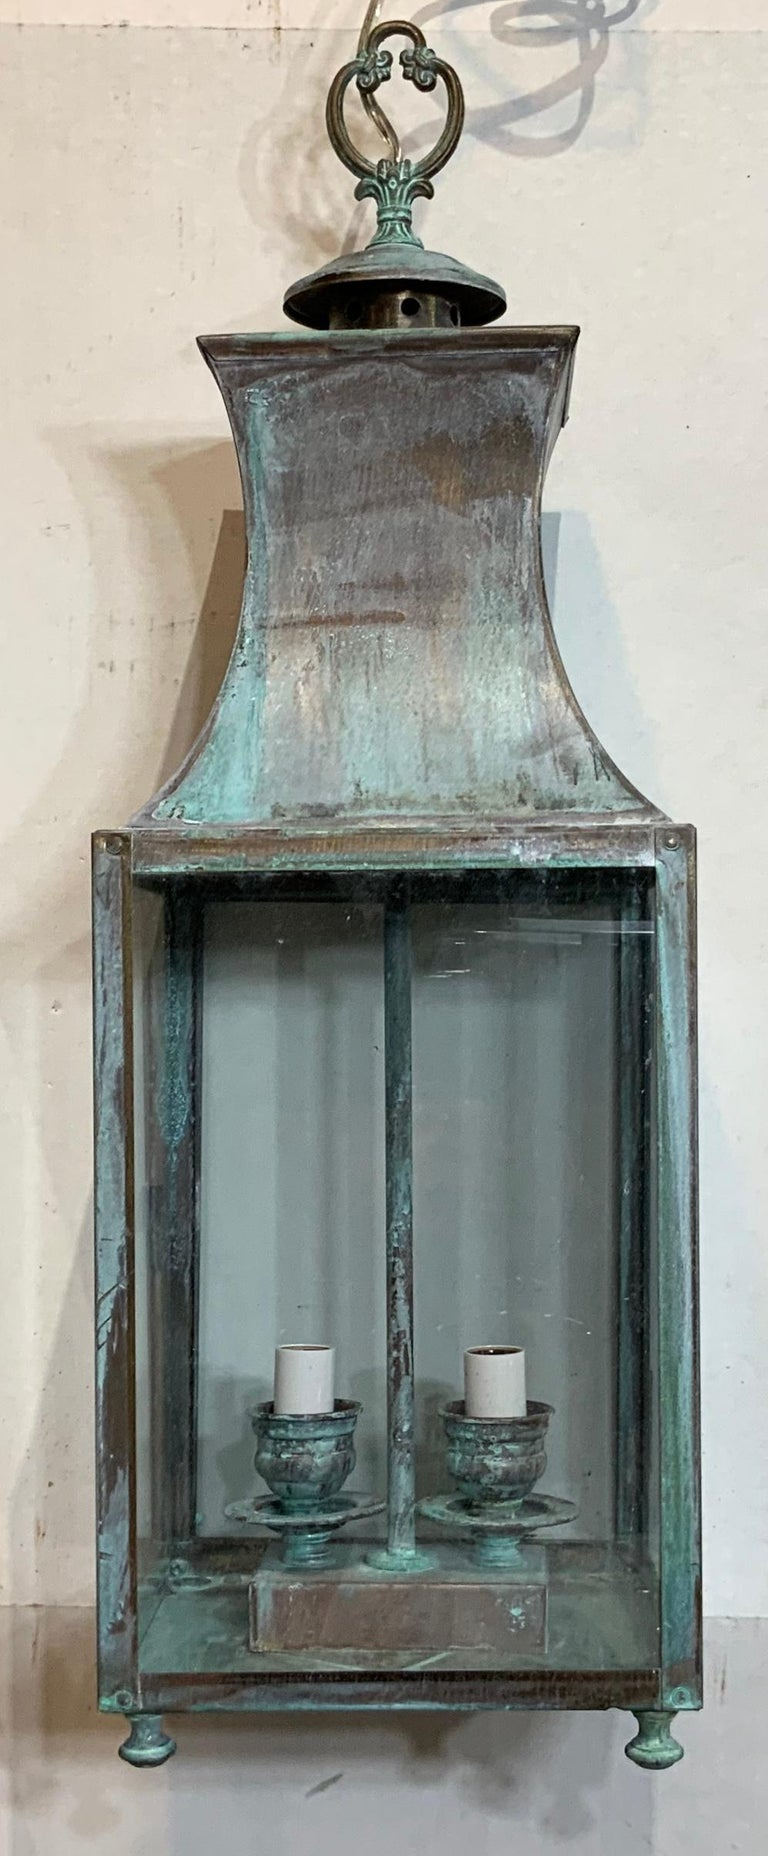 20th Century Vintage Brass Hanging Lantern For Sale